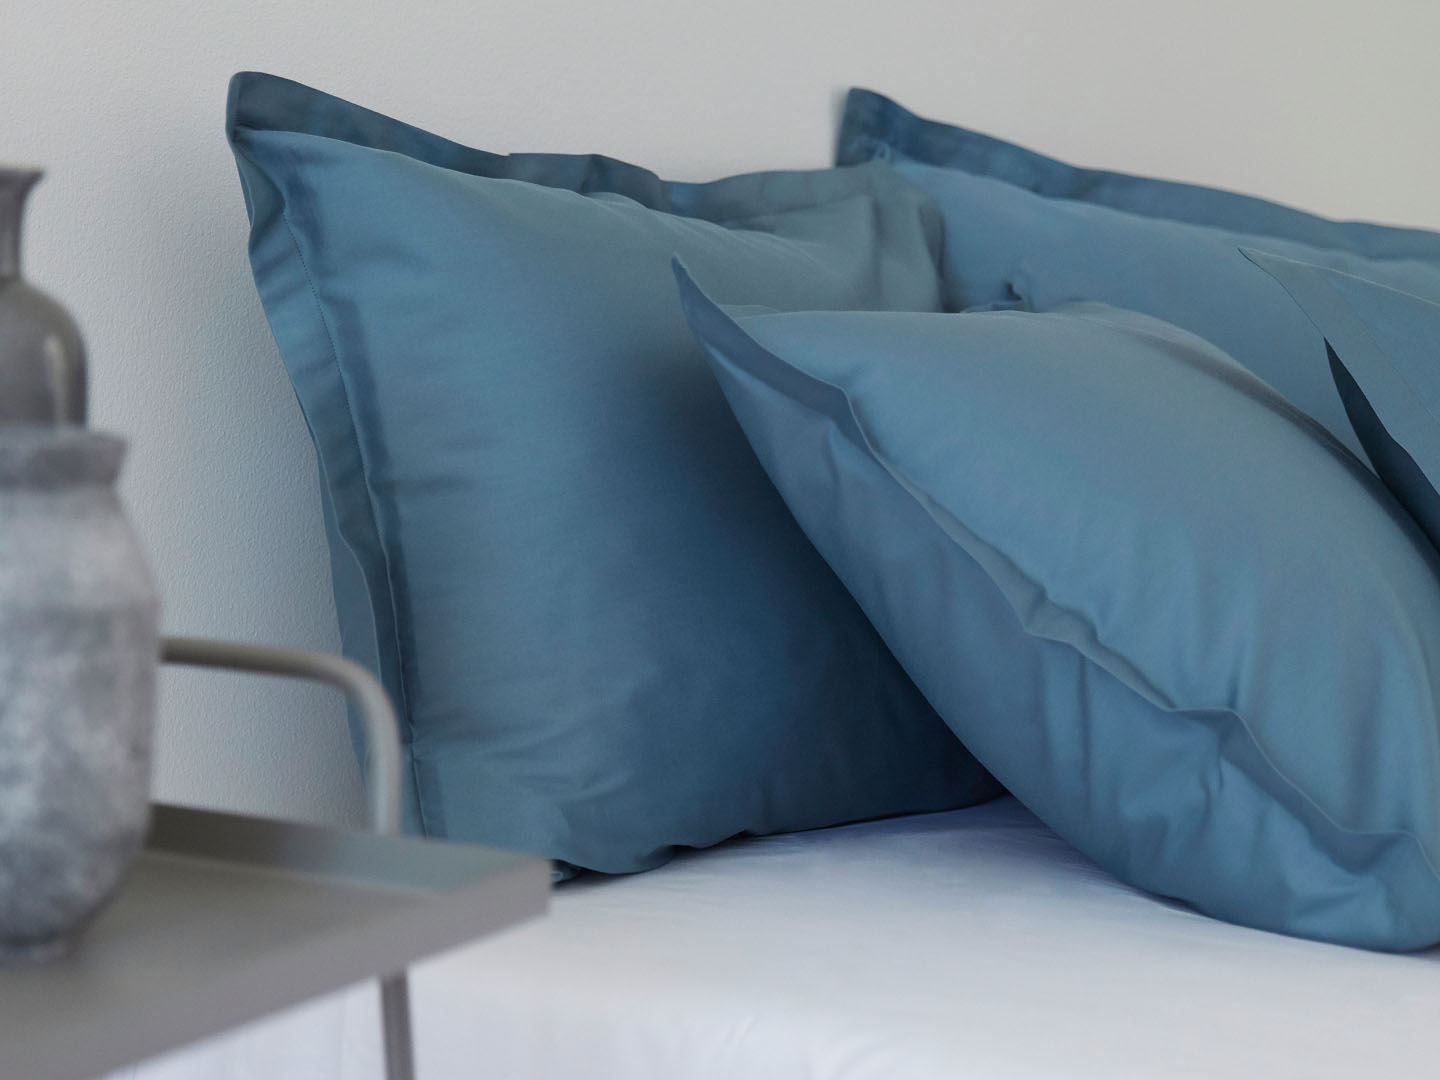 Pillowcase Vidd - North Sea Blue in the group Bedding / Pillowcases at A L V A (1044)